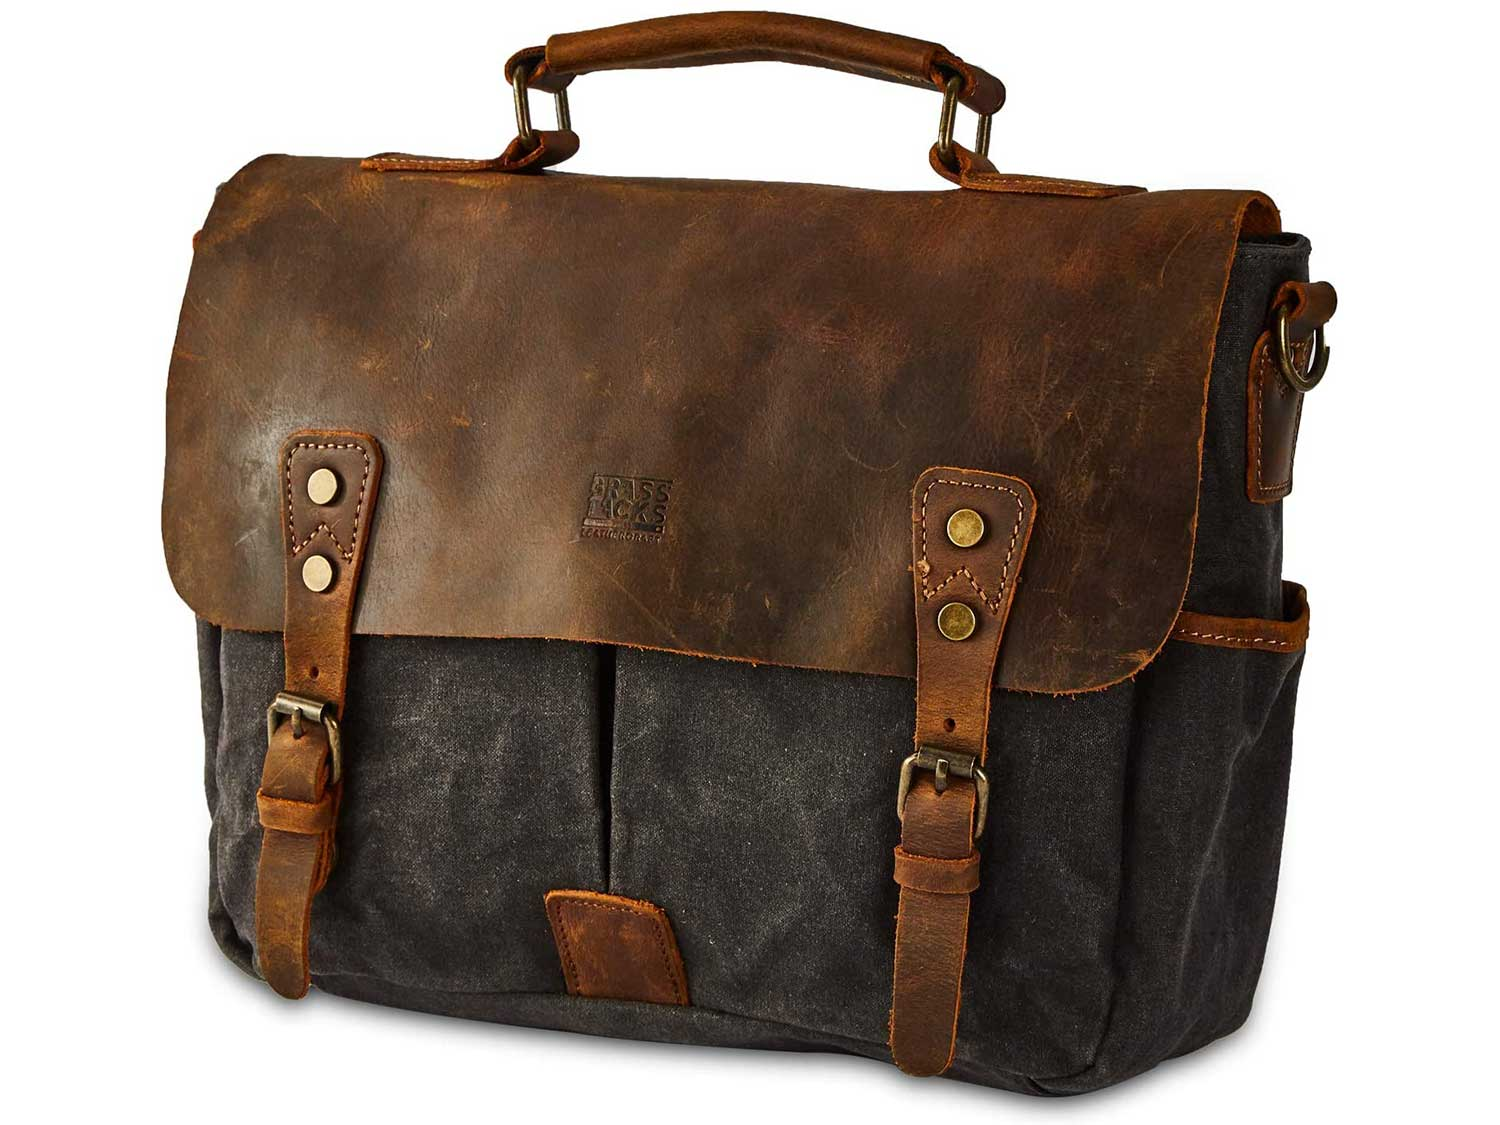 BRASS TACKS Leathercraft Vintage 14 inch Laptop Briefcase Shoulder Messenger Bag for Men Women Heavy Duty Waterproof Canvas and Genuine Leather